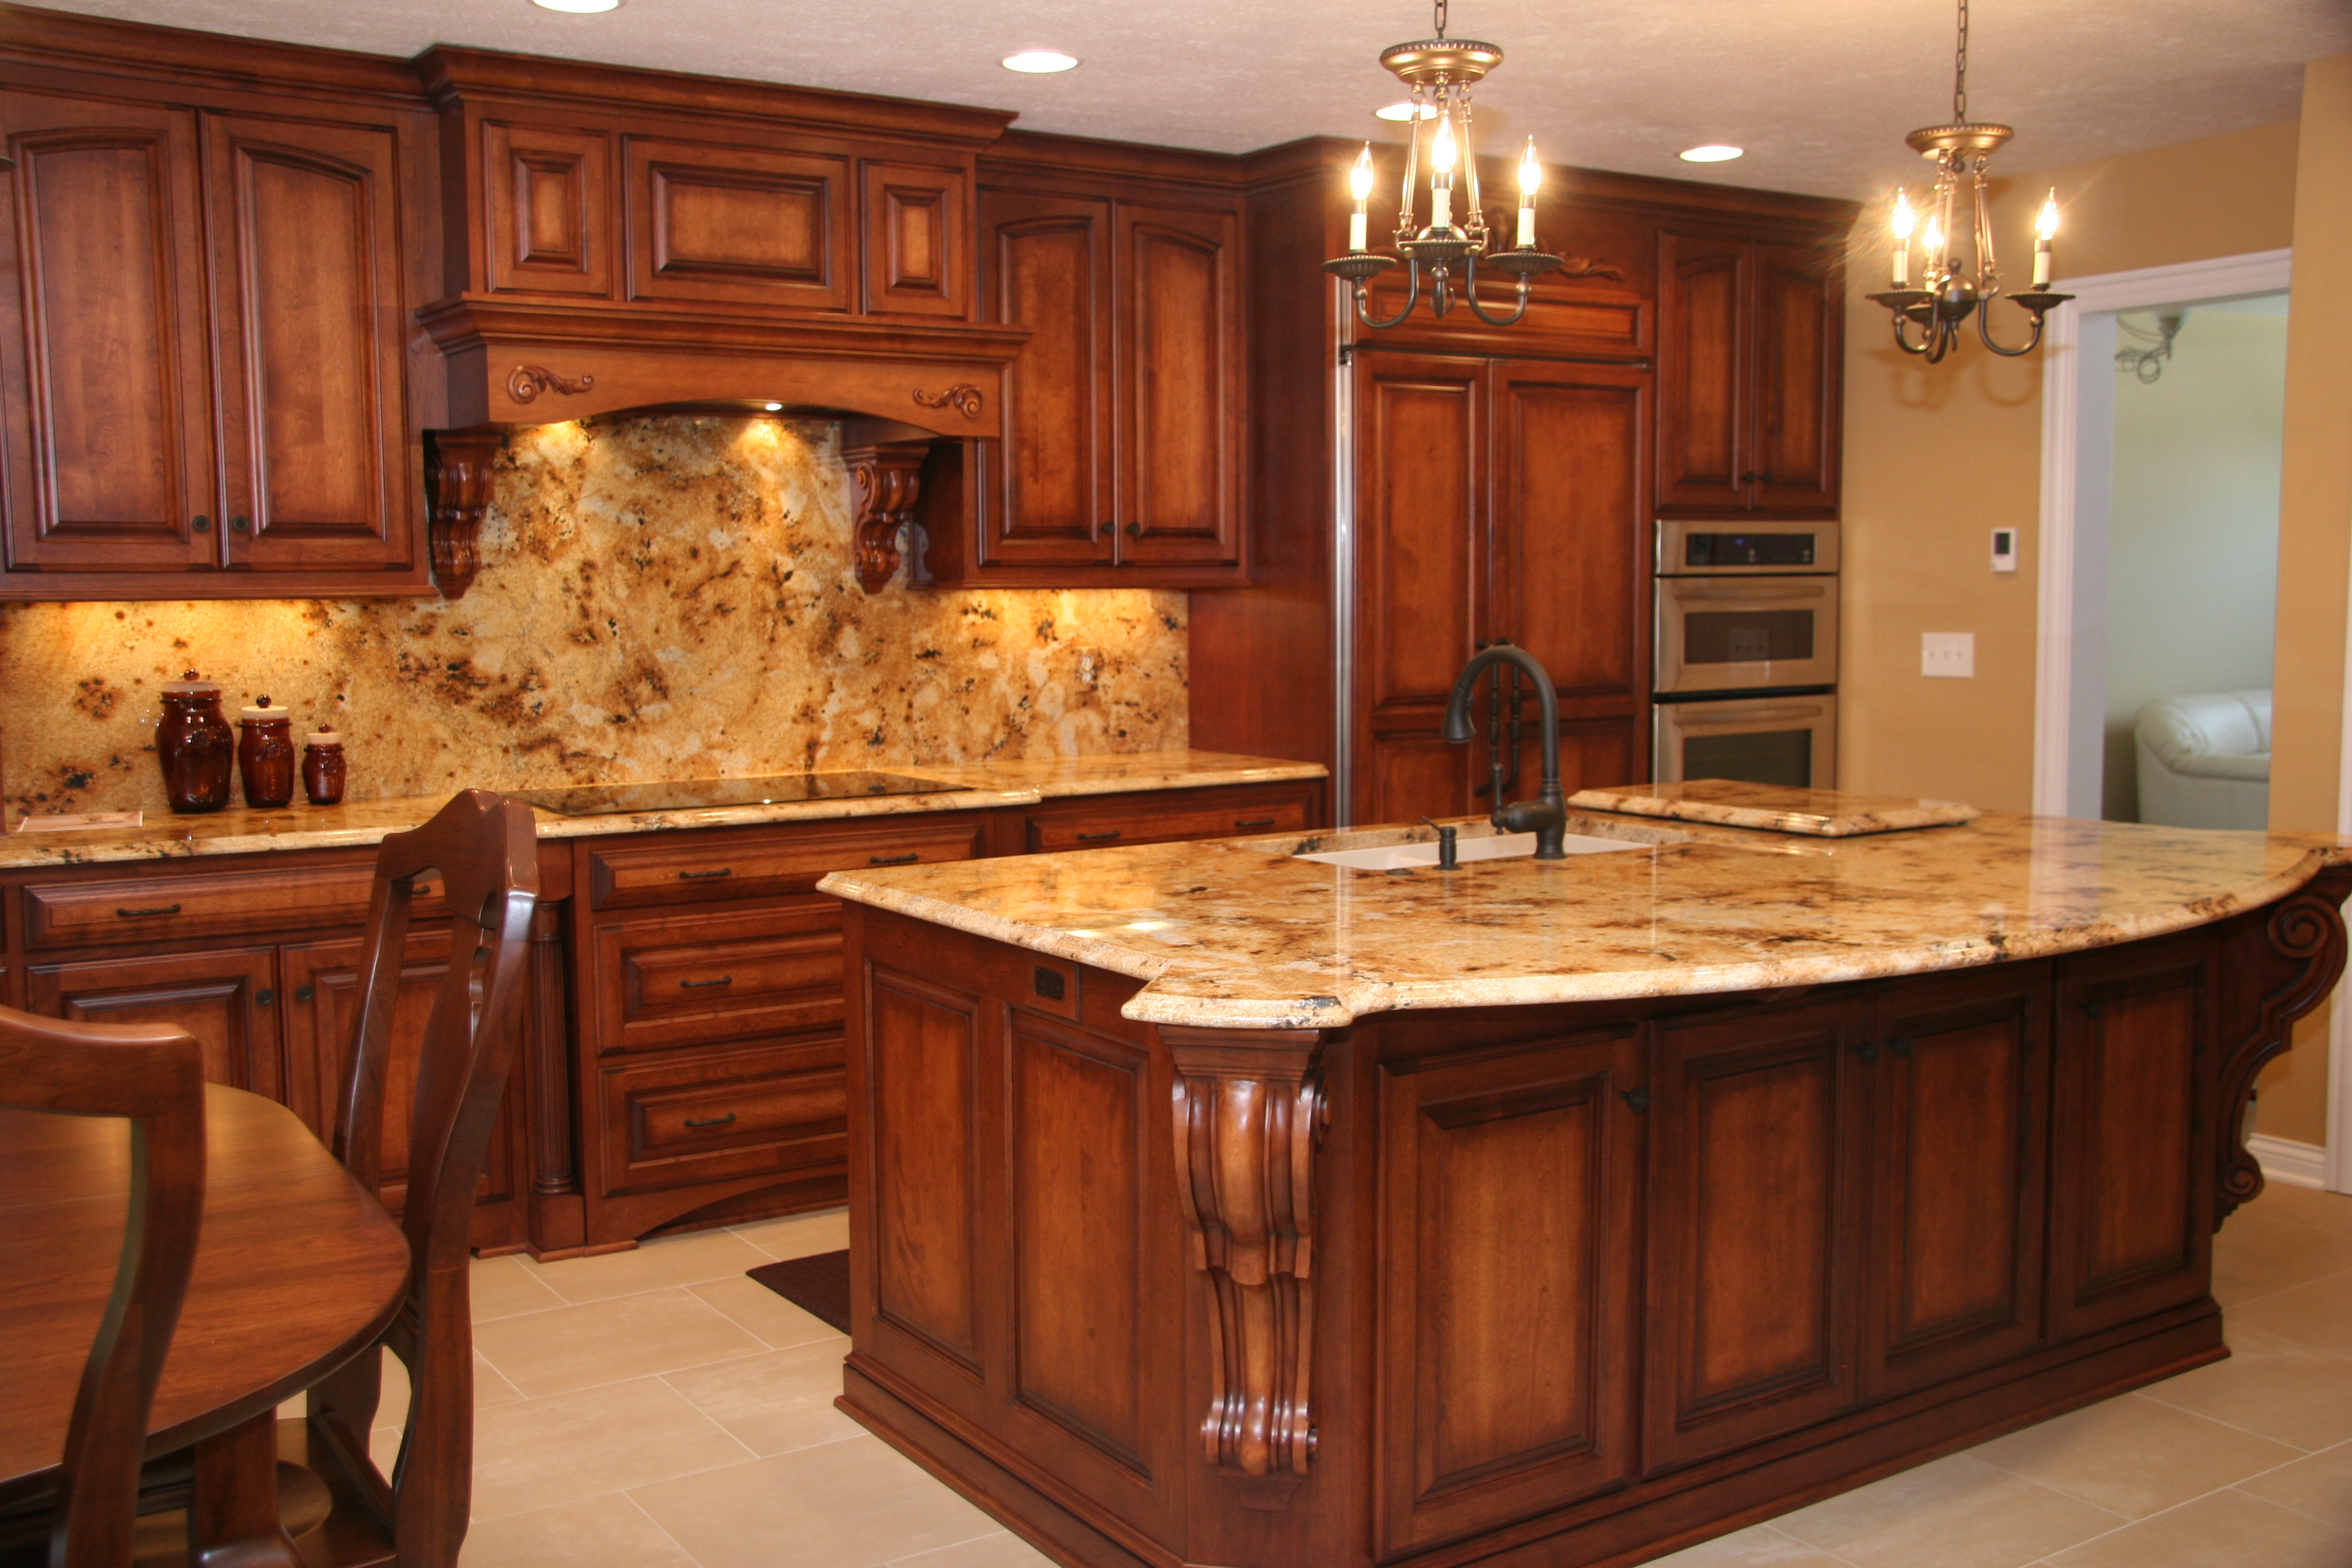 Classy Kitchen Design photo - 8